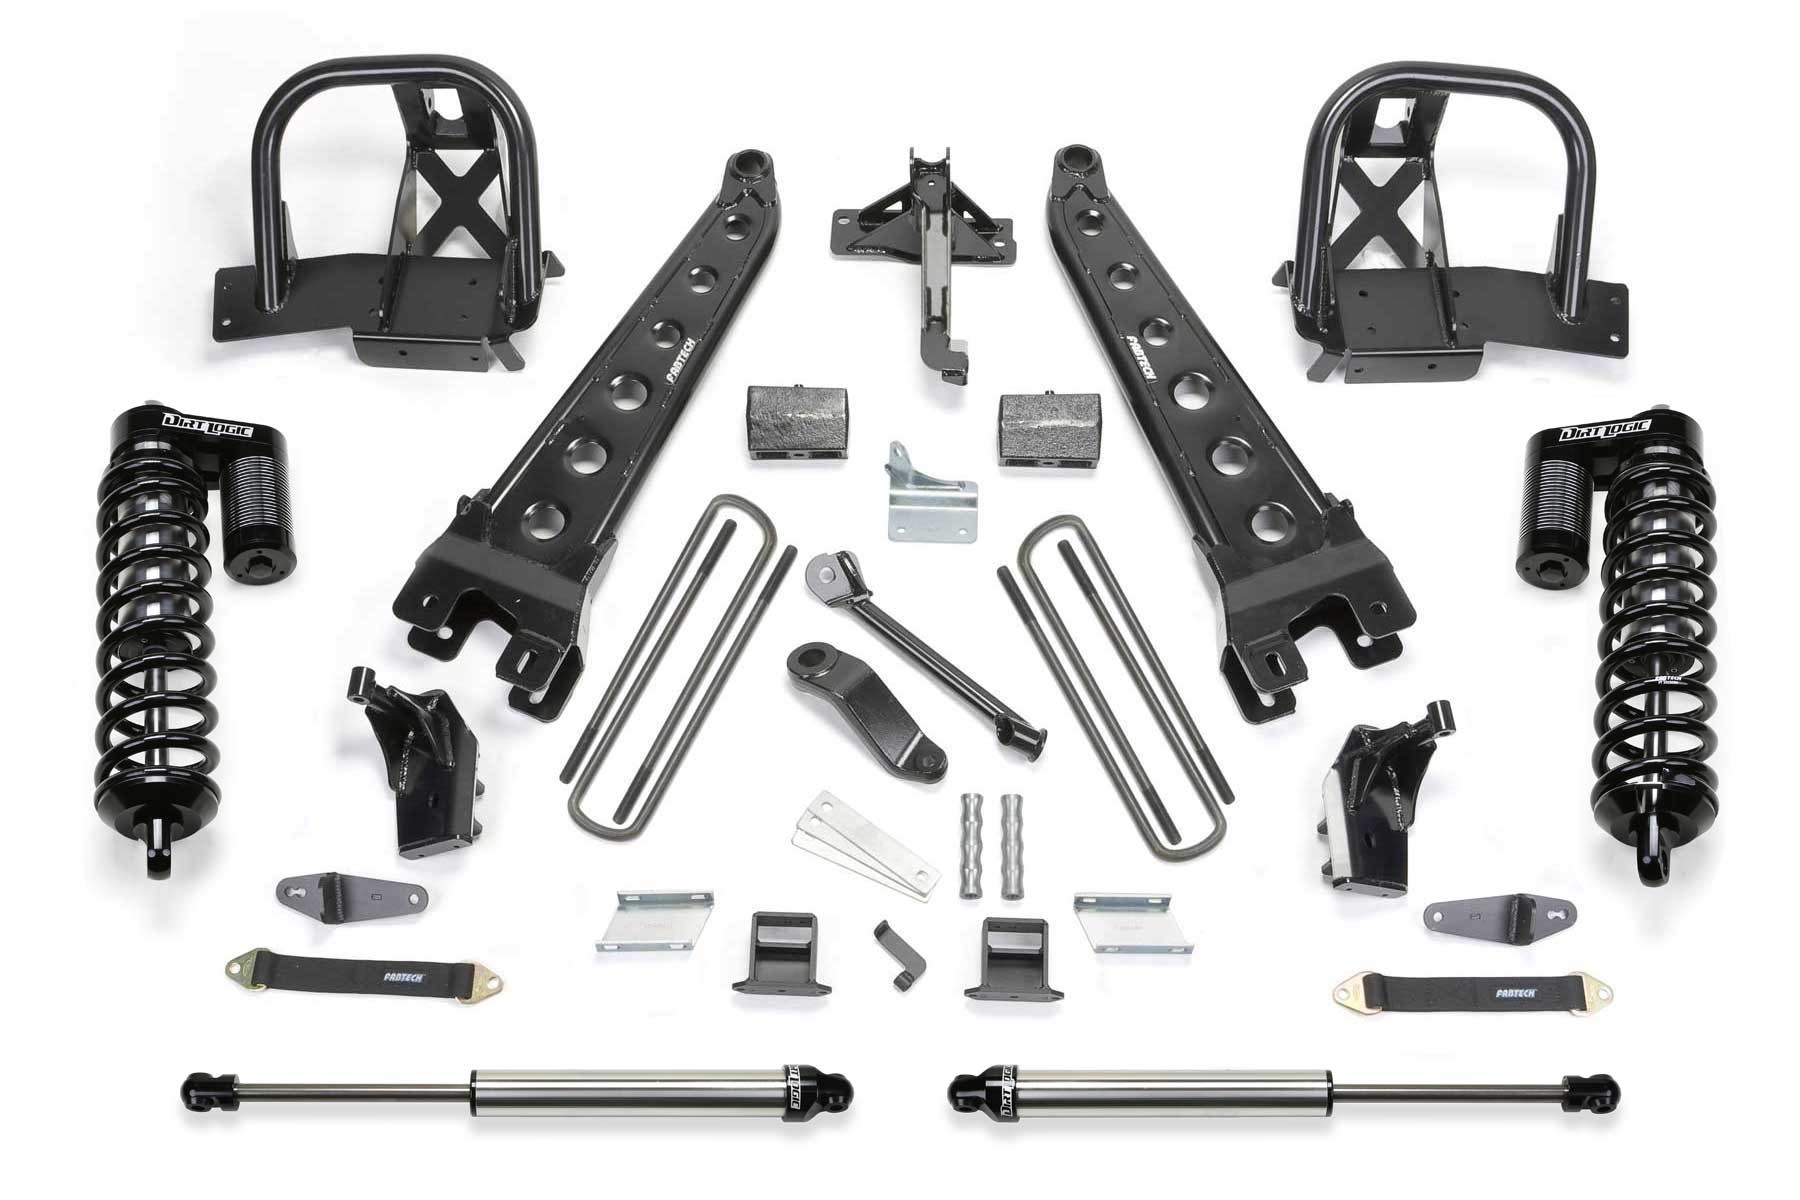 FABTECH-  2011-13 F450 / 550 4WD [10 LUG CHASSIS CAB]- 6″ RADIUS ARM SYSTEM W/ FRONT DIRT LOGIC 4.0 COILOVERS & REAR DIRT LOGIC SHOCKS